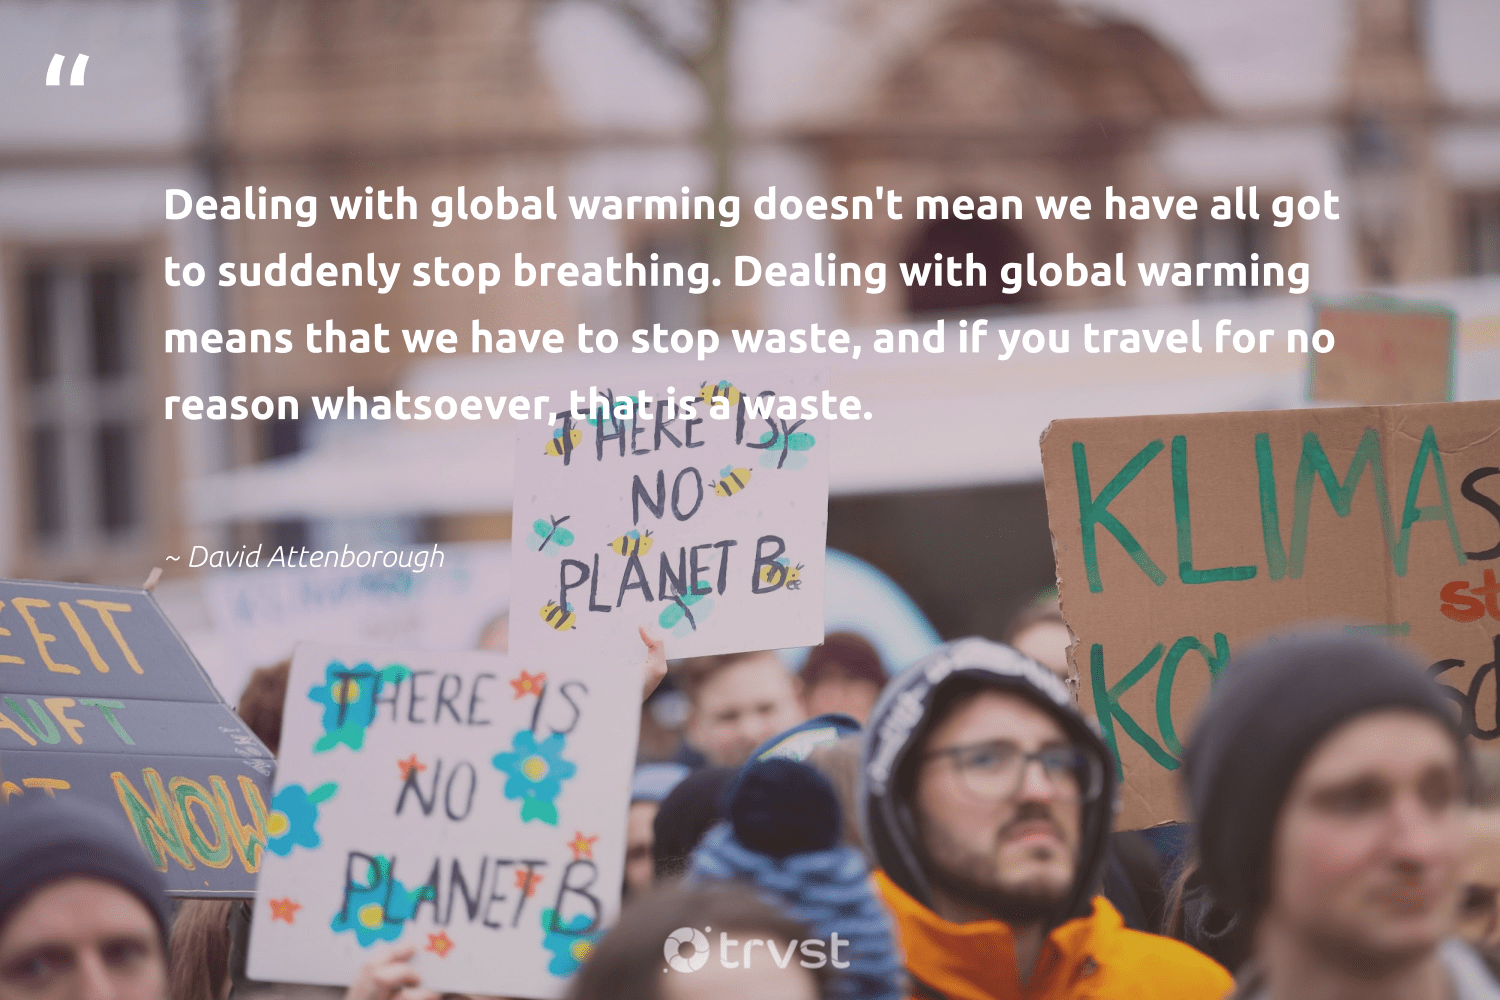 """""""Dealing with global warming doesn't mean we have all got to suddenly stop breathing. Dealing with global warming means that we have to stop waste, and if you travel for no reason whatsoever, that is a waste.""""  - David Attenborough #trvst #quotes #waste #globalwarming #travel #mollusc #climatefight #science #socialchange #marine #climate #palaeontology"""